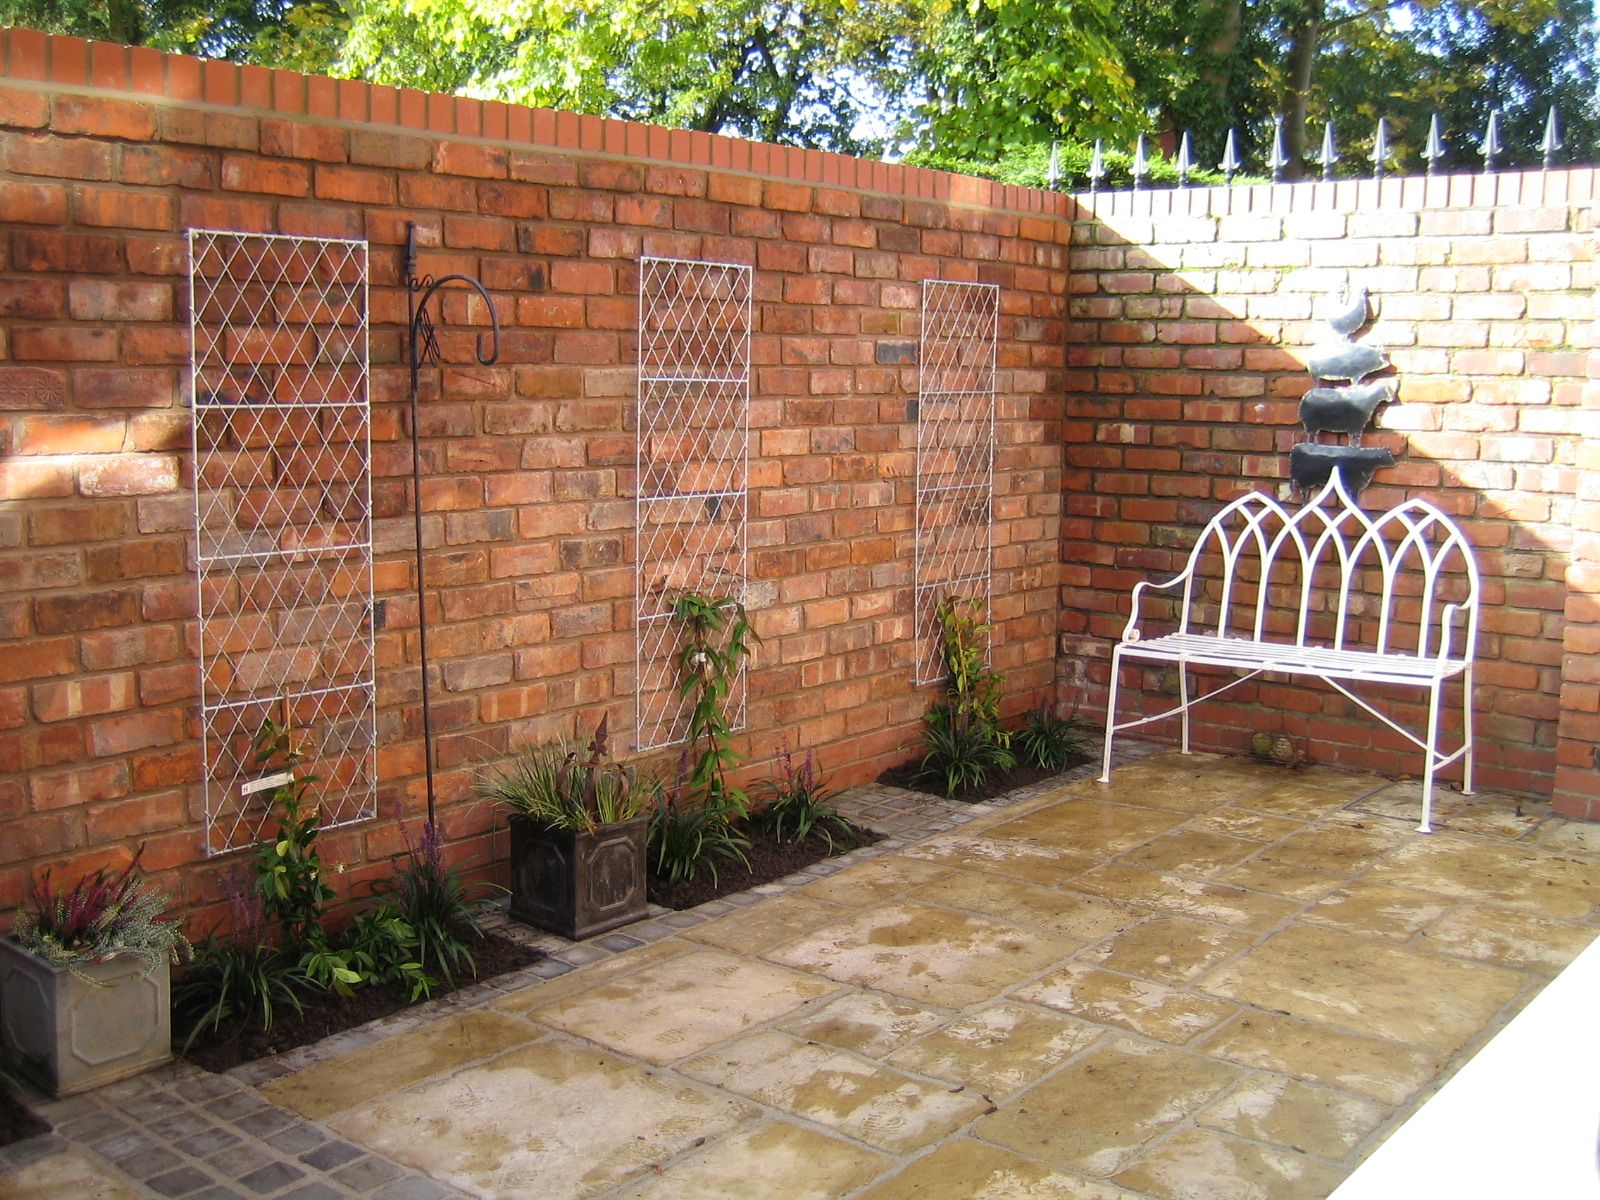 Brick Wall Design Reclaimed Brick Walls In A Small Courtyard Garden From A